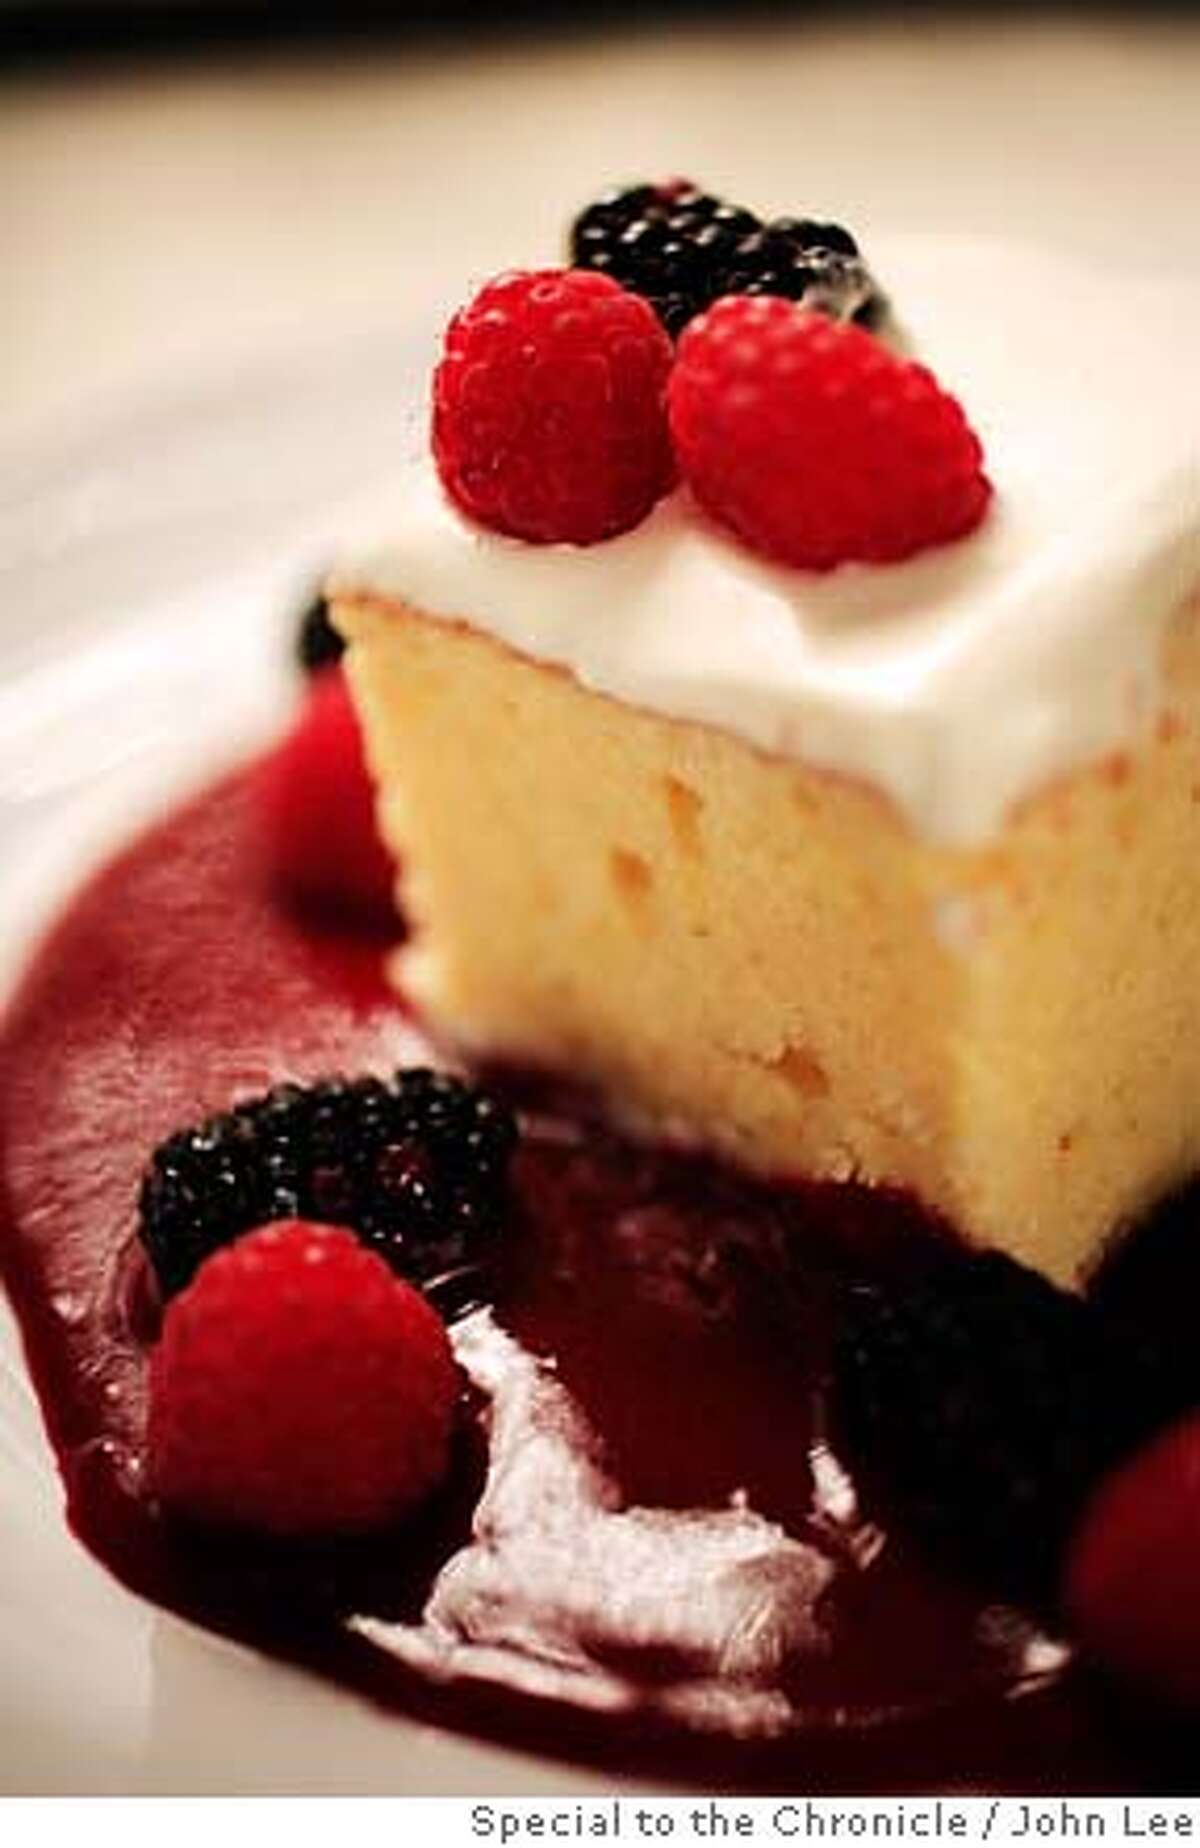 SOUTH01_02_JOHNLEE.JPG Tres Leches cake. By JOHN LEE/SPECIAL TO THE CHRONICLE